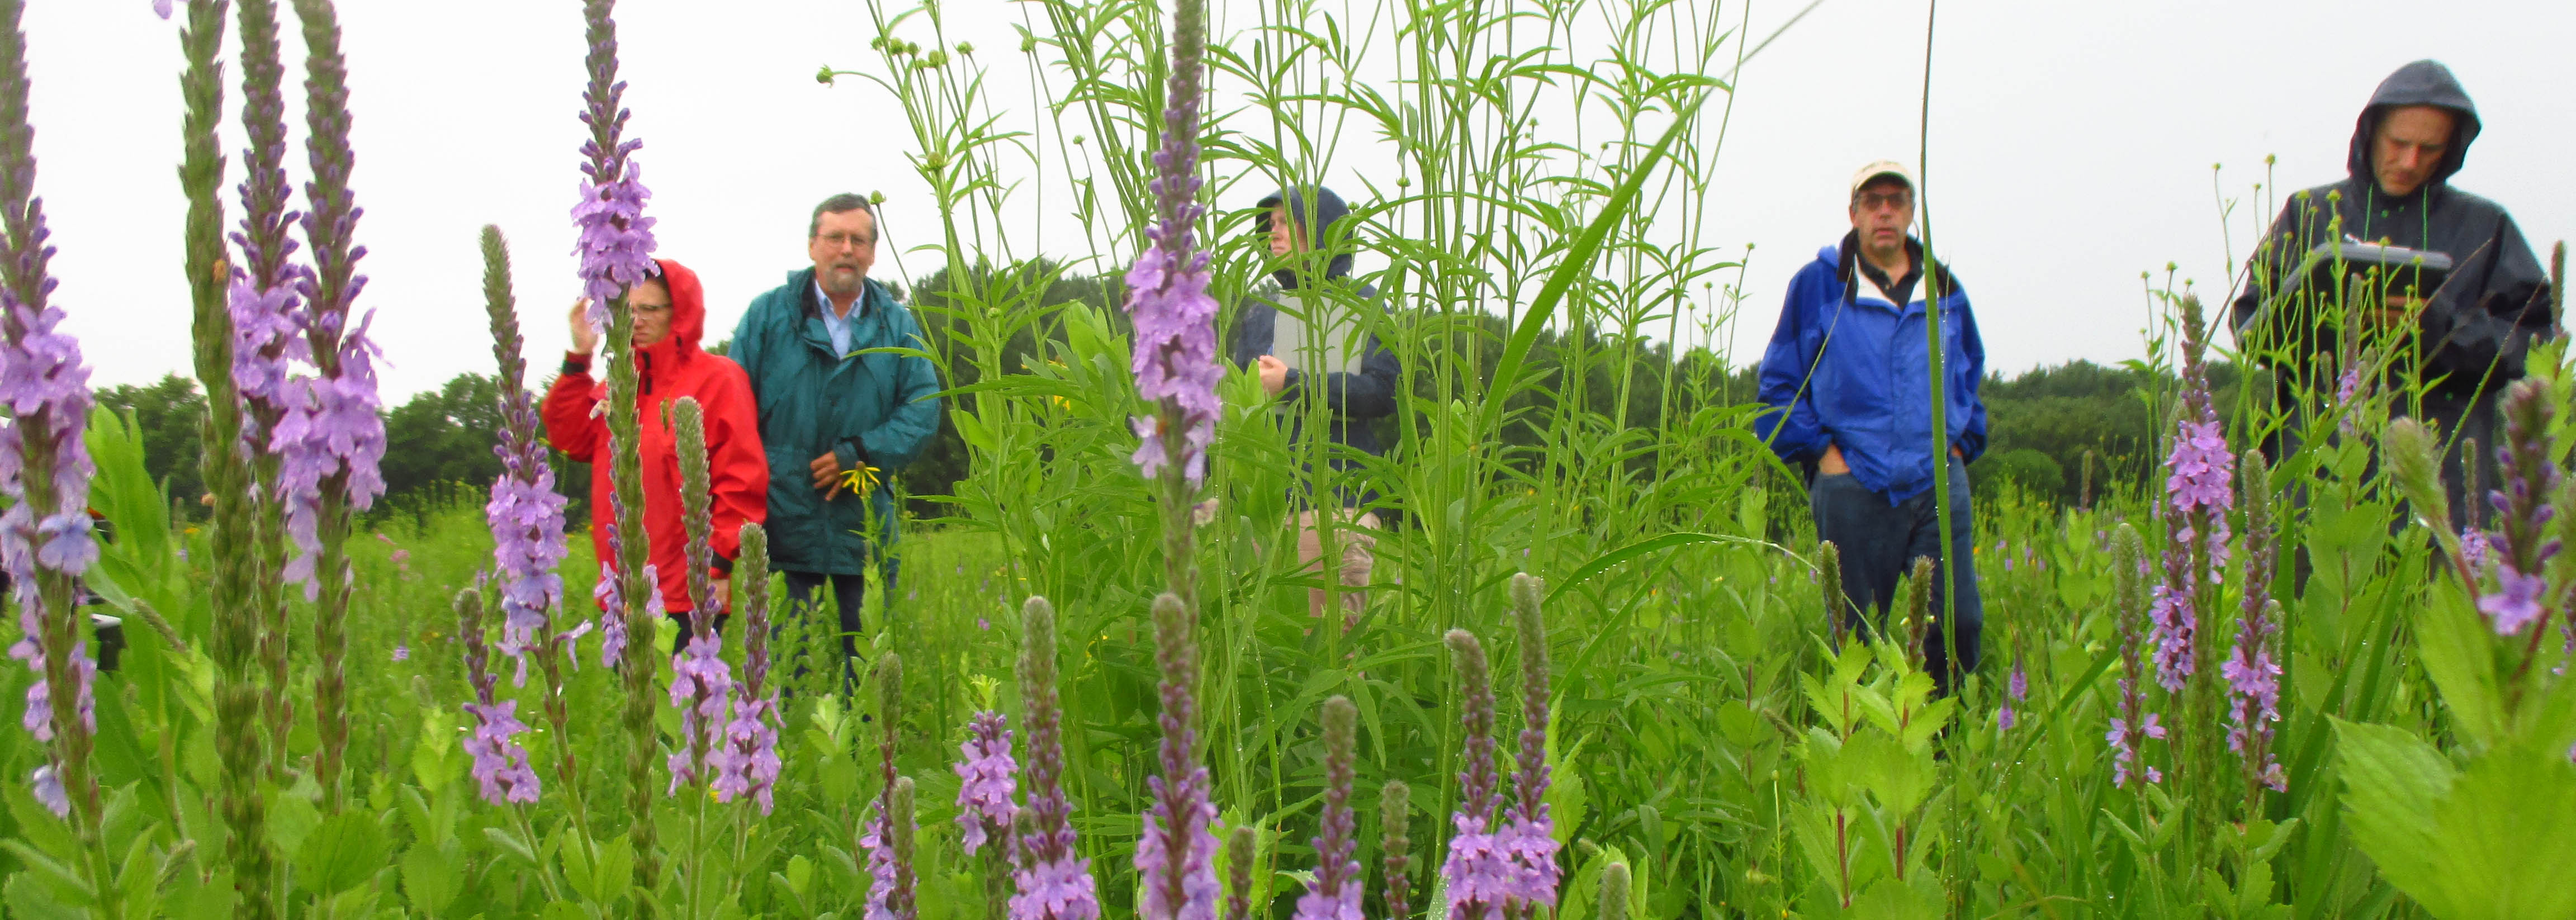 Five people wearing rain jackets, walking through a field with tall grass and purple flowers.